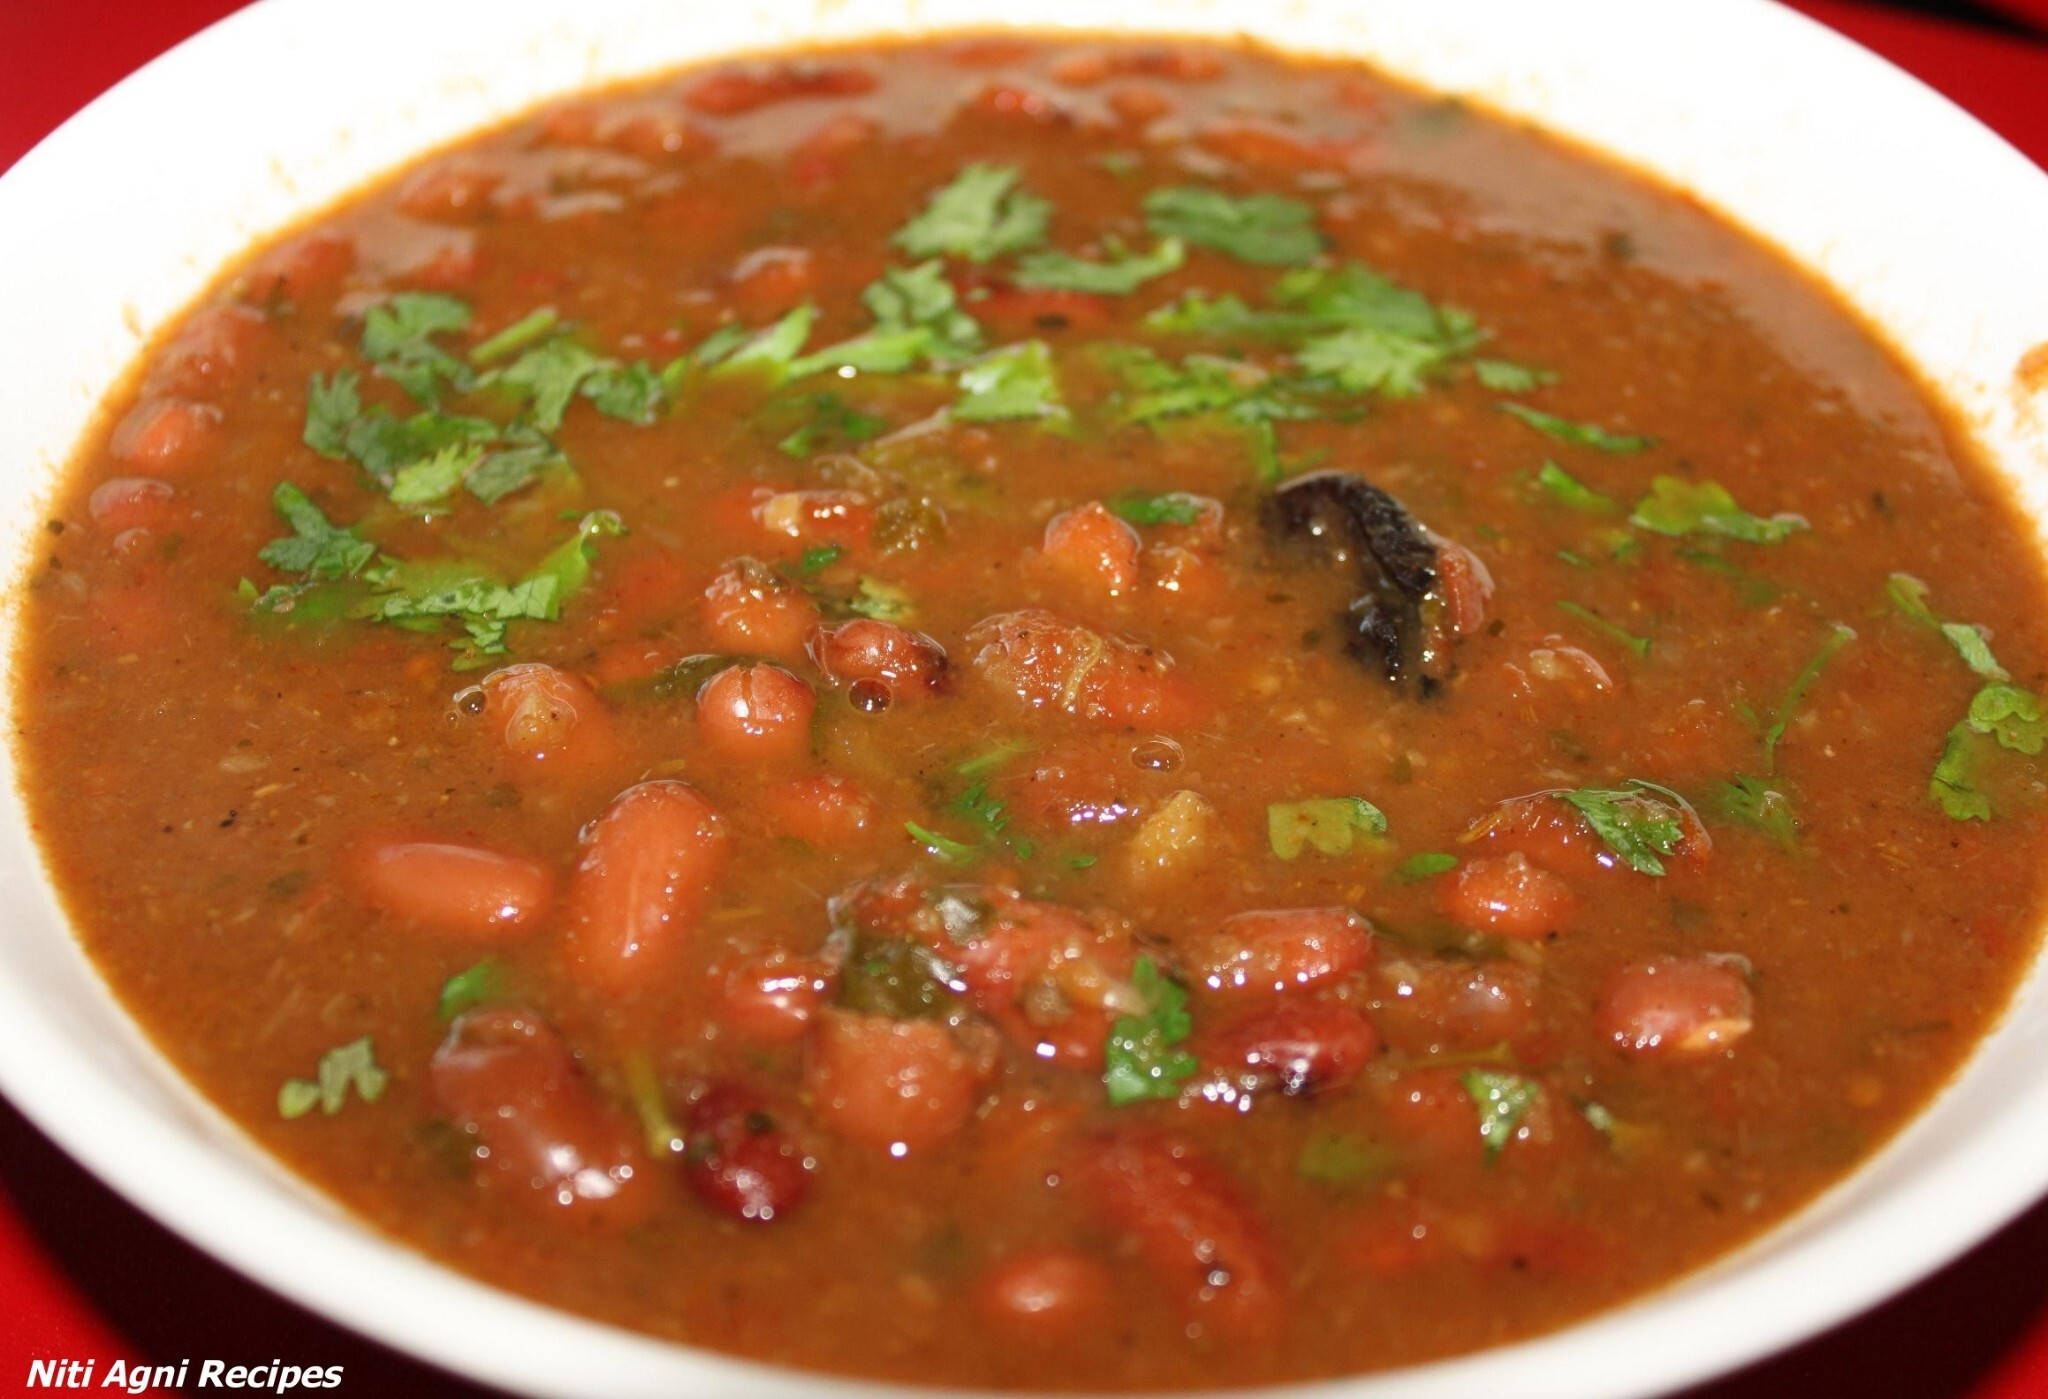 Rajmah Masala/Red Kidney Beans Curry